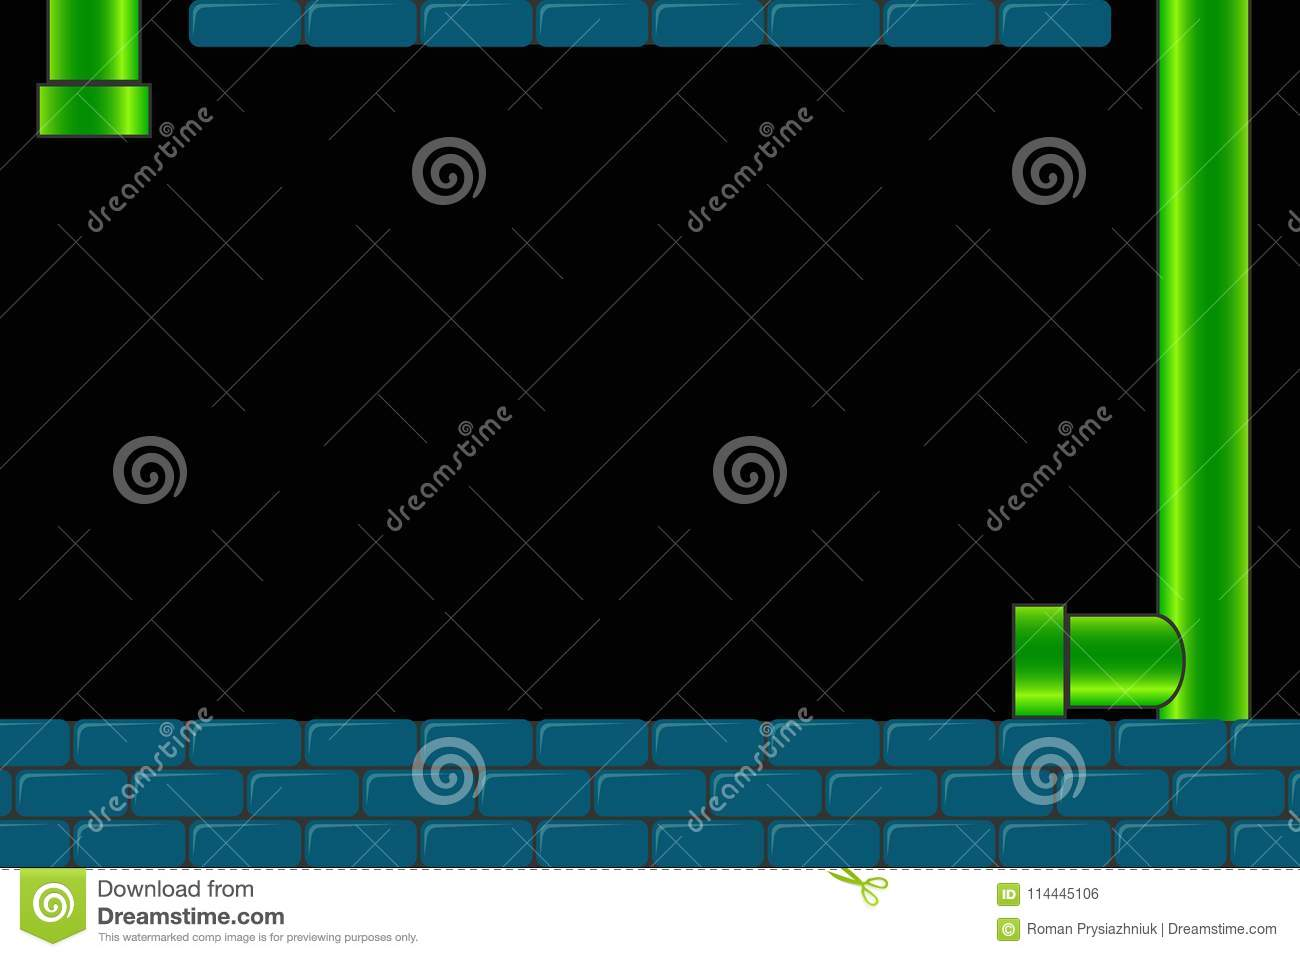 Old arcade video game background. Retro dark screen for game with bricks and pipe or tube. Vector.